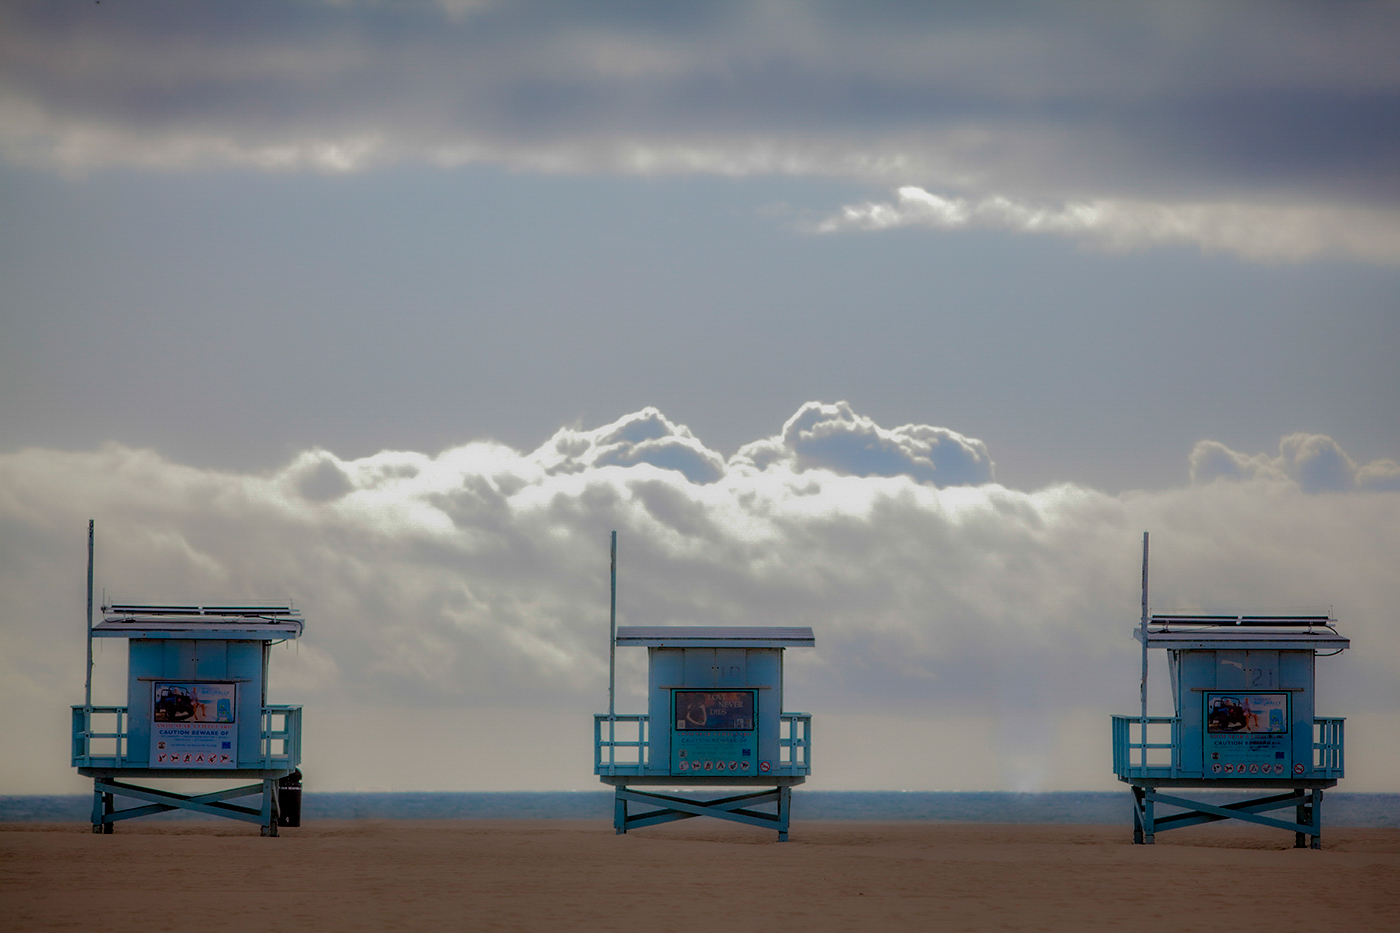 08Larry_White_1_Venice_Beach_Lifeguard_Shacks